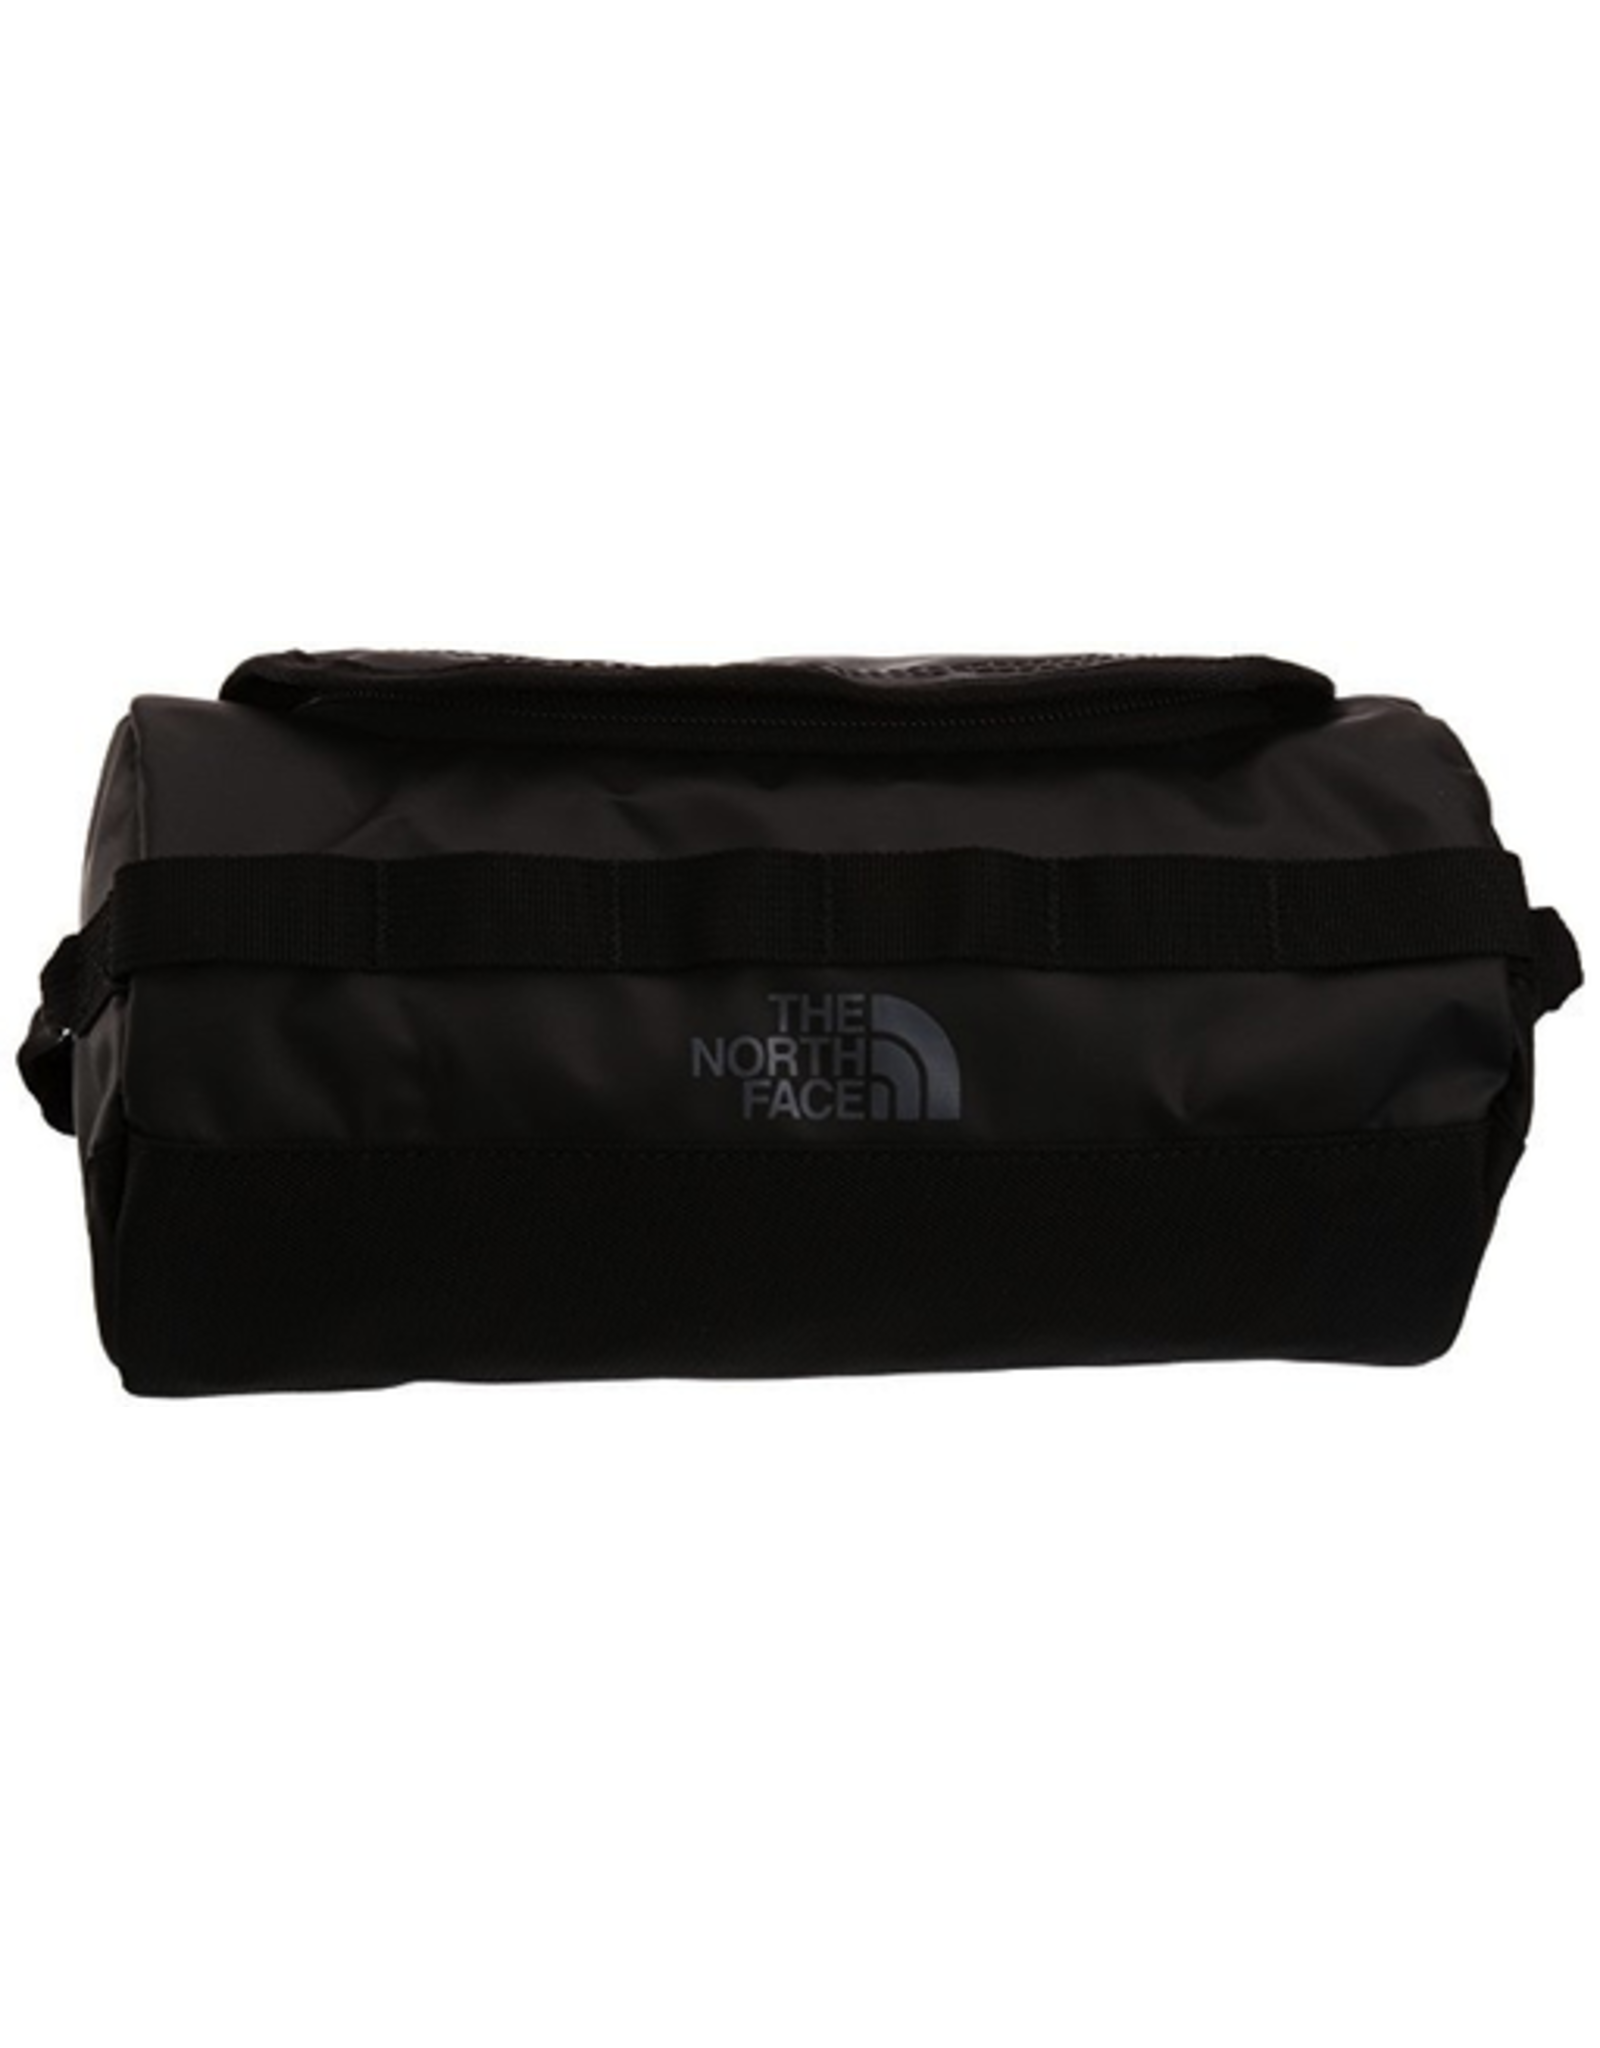 North Face North Face BC Travel Canister- L